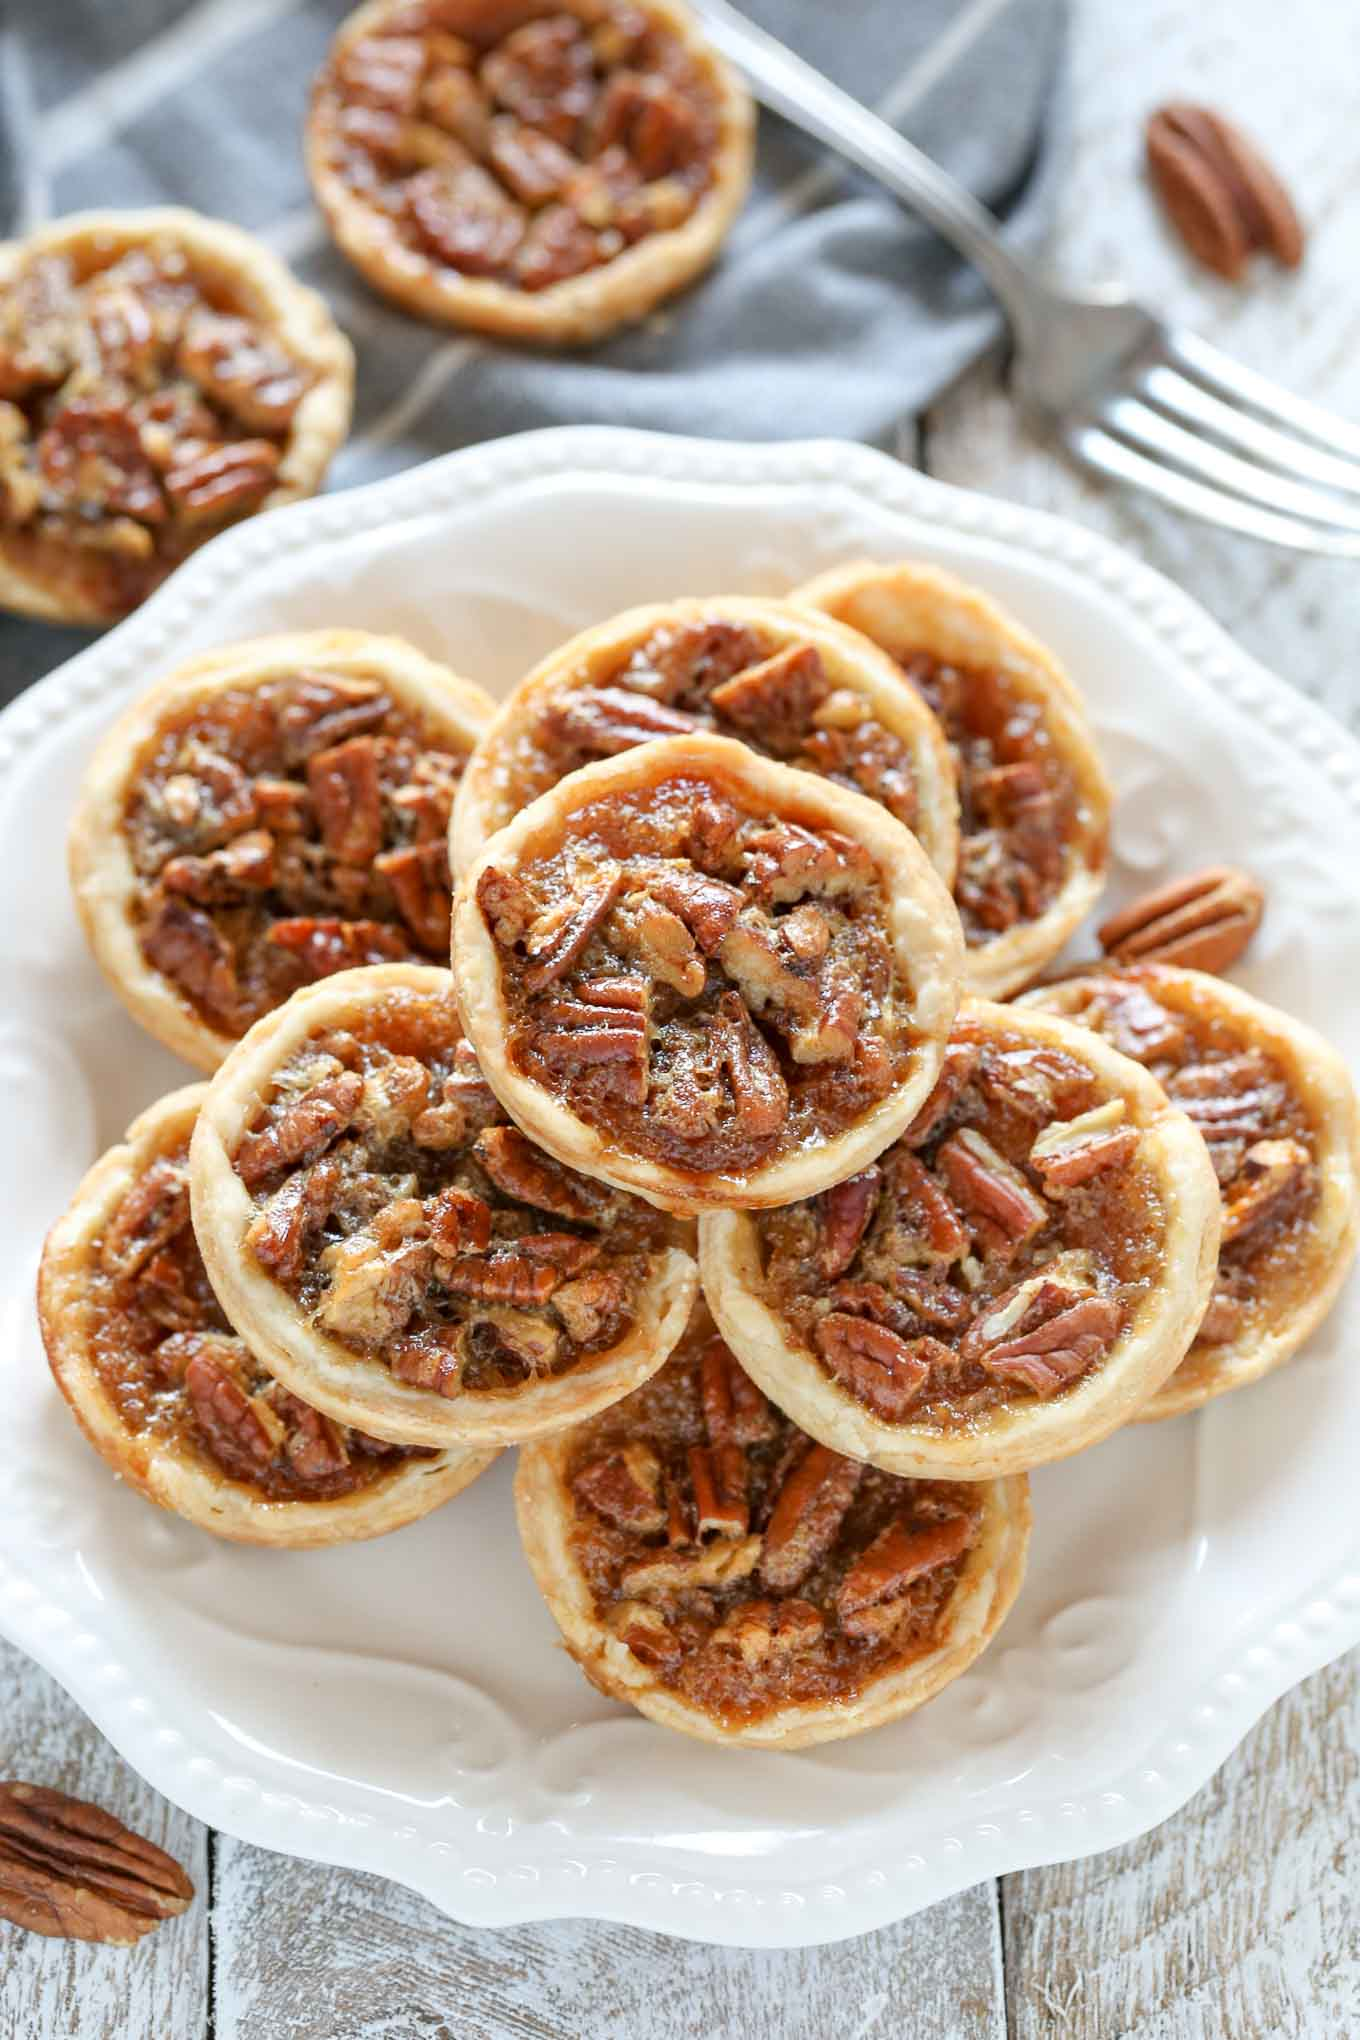 These Mini Pecan Pies are easy to make and can also be made ahead of time. These are the perfect mini treat for Thanksgiving too!